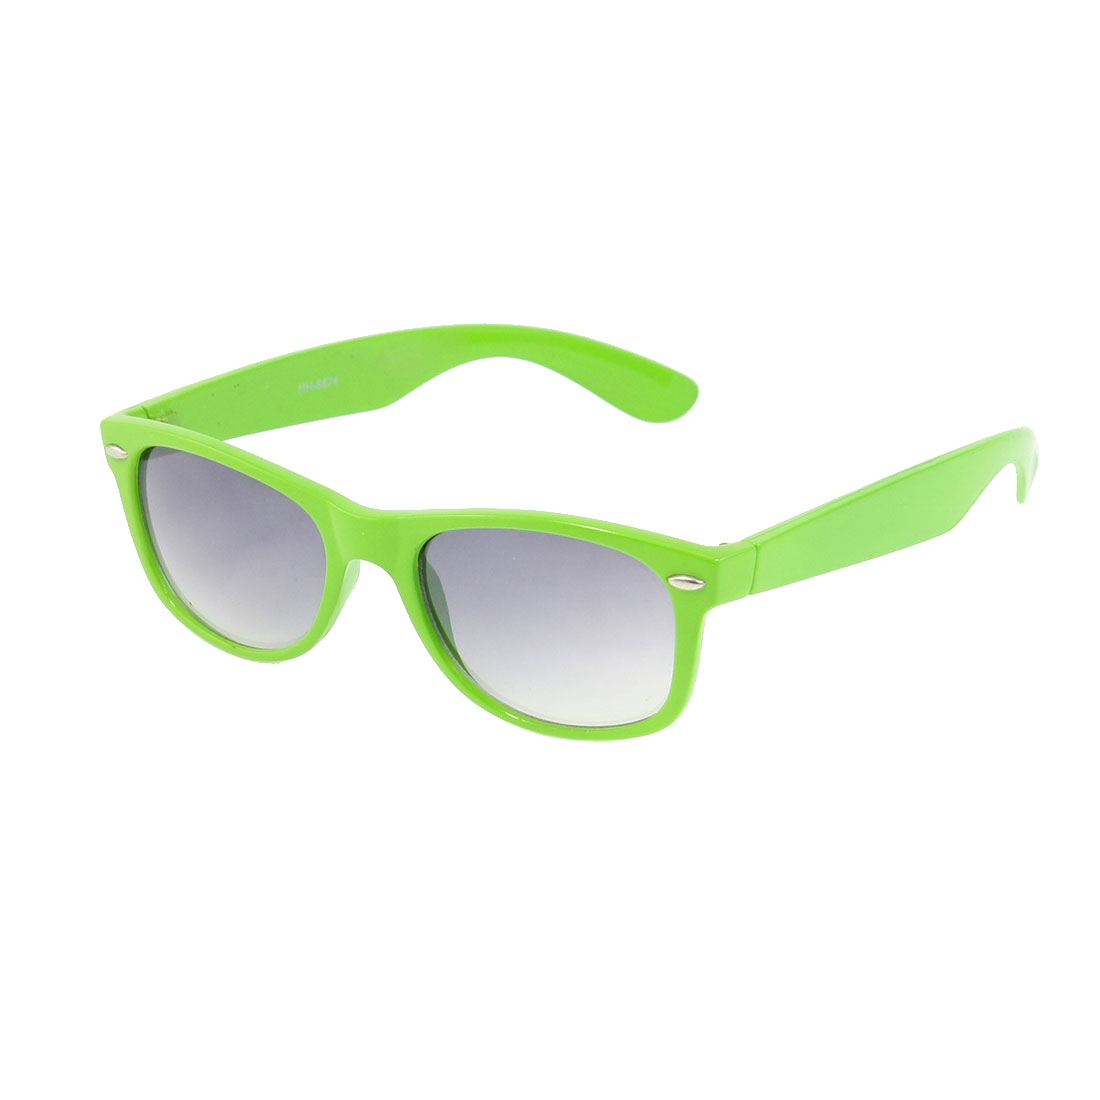 Ladies Light Green Plastic Folding Smooth Arms Single Bridge Sunglasses